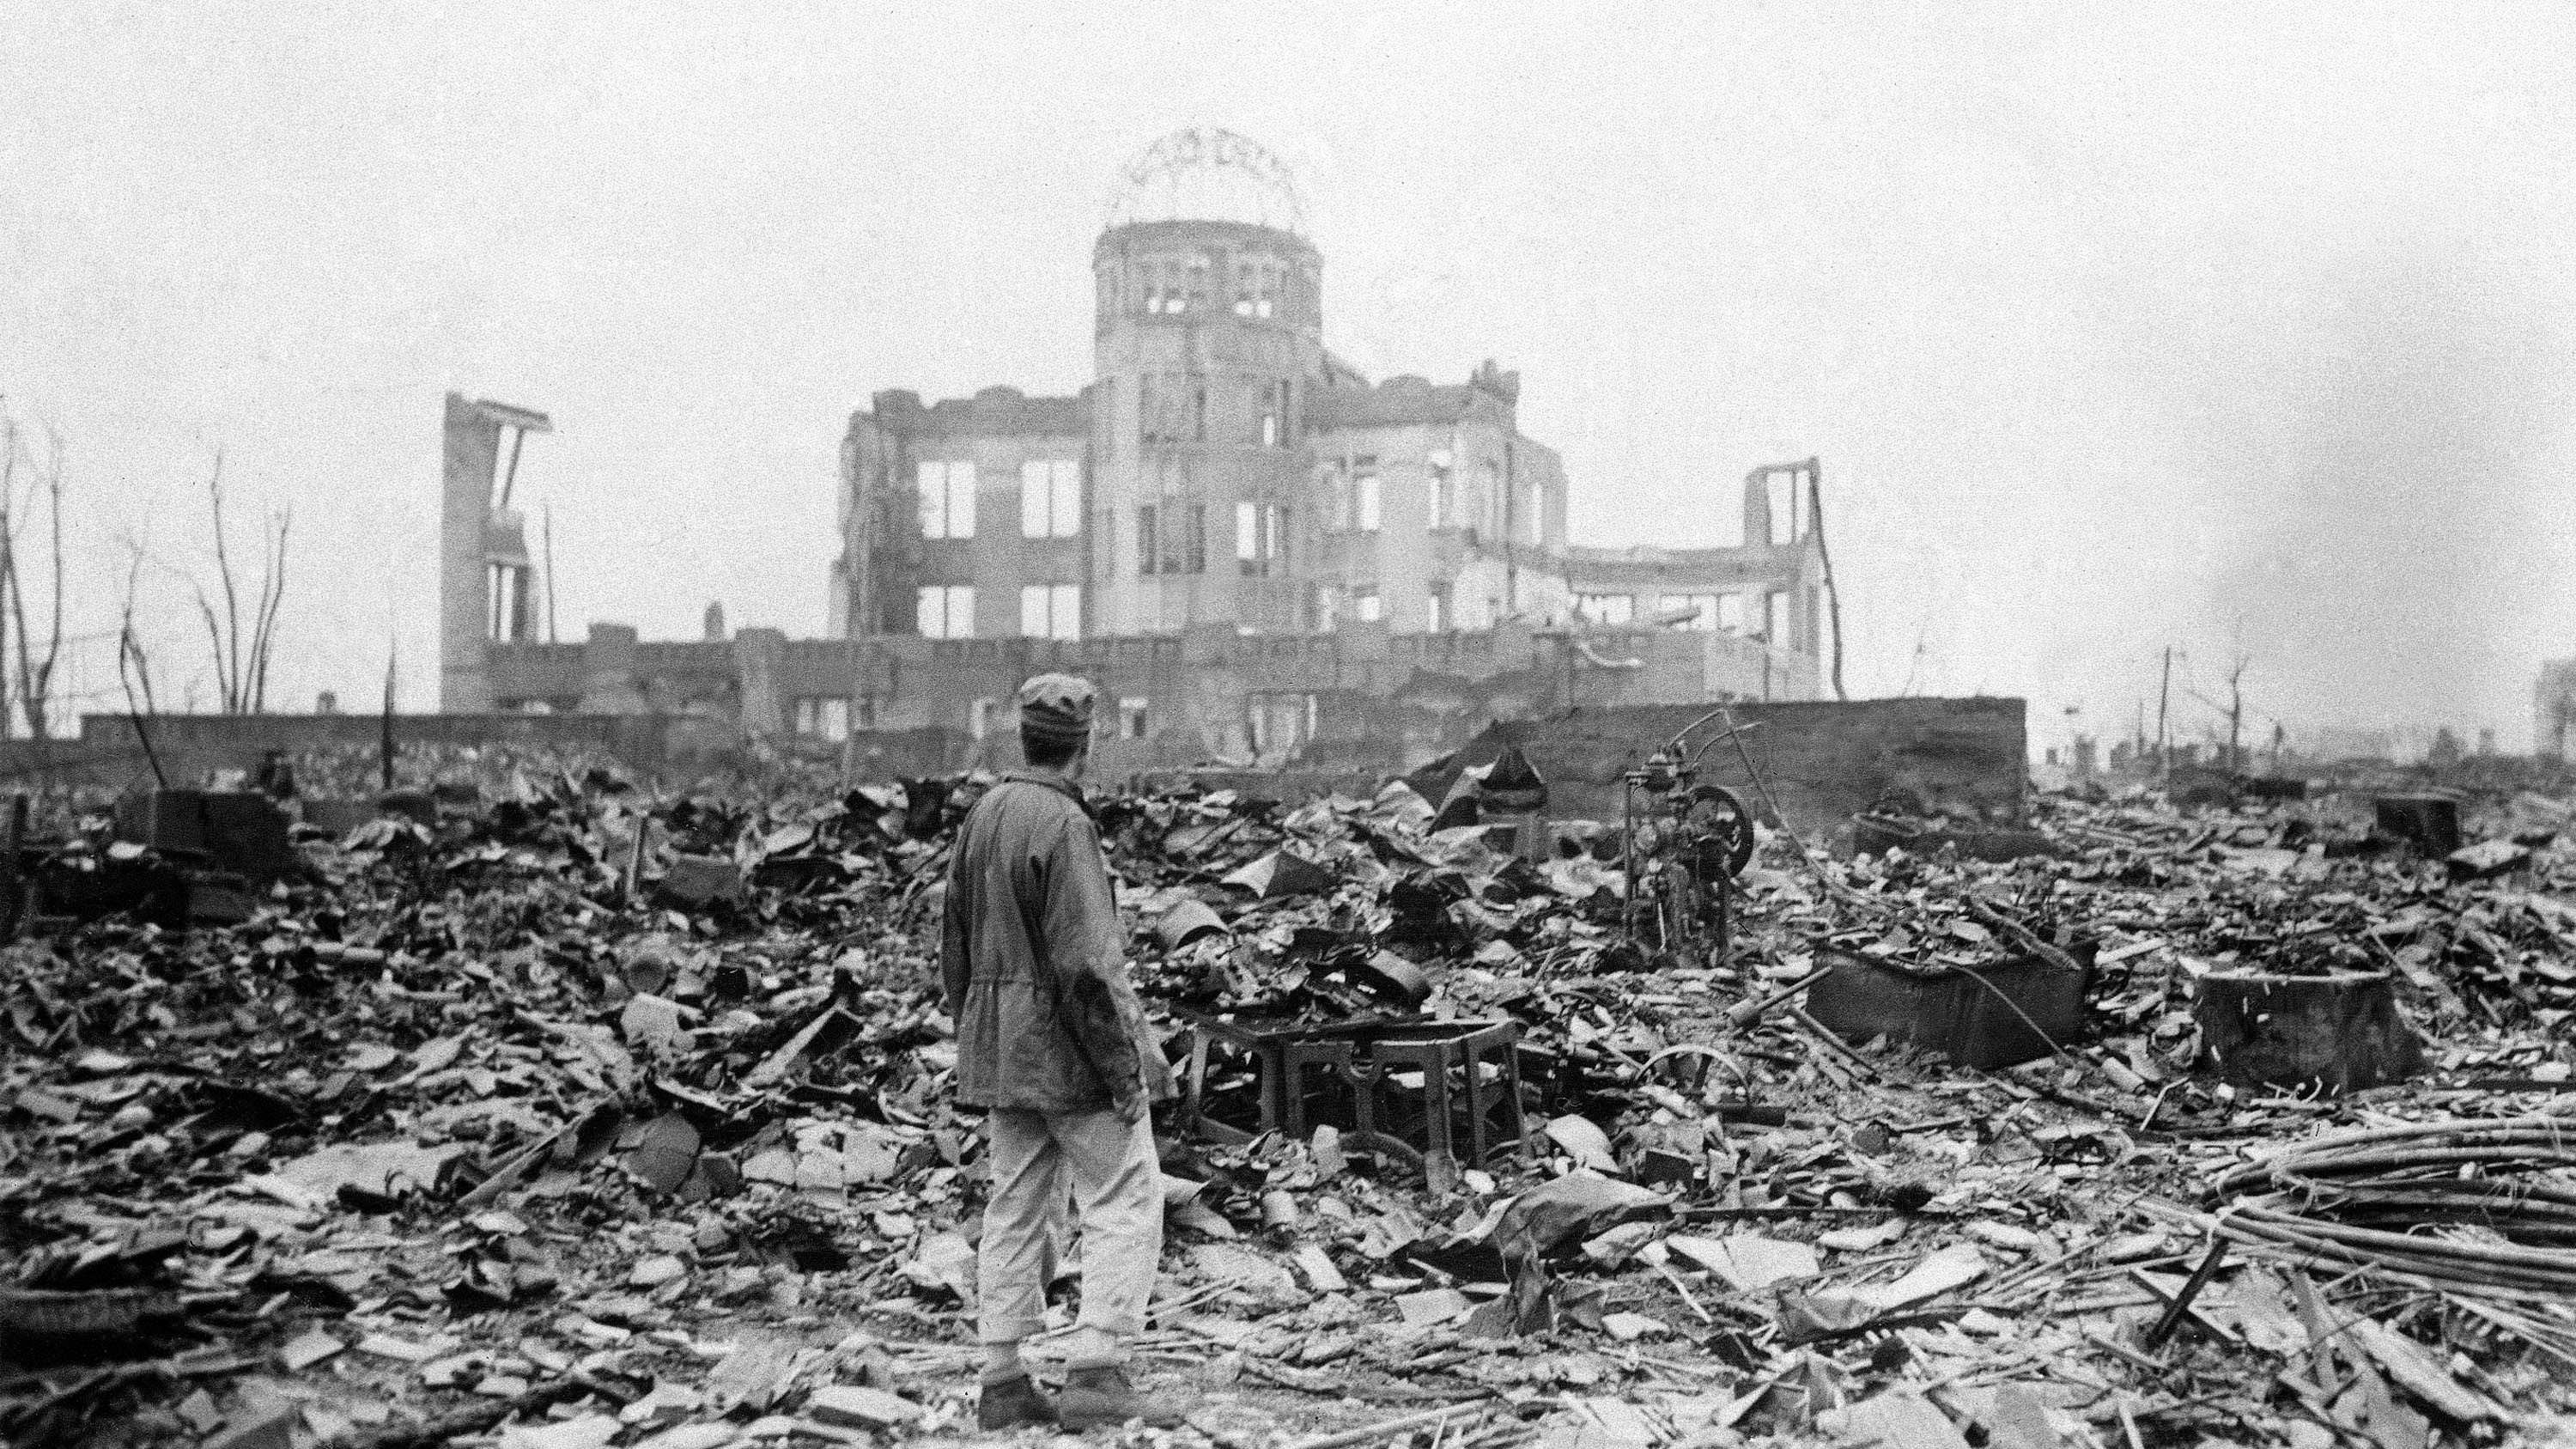 FILE - In this Sept. 8, 1945 file photo, an allied correspondent stands in the rubble in front of the shell of a building that once was a movie theater in Hiroshima, Japan, a month after the first atomic bomb ever used in warfare was dropped by the U.S. on Aug. 6, 1945. A contentious debate over nuclear power in Japan is also bringing another question out of the shadows: Should Japan keep open the possibility of making nuclear weapons _ even if only as an option? It may seem surprising in the only country ever devastated by atomic bombs, particularly as it marks the 67th anniversary of the bombings of Hiroshima on Aug. 6, 2012, and Nagasaki three days later. The Japanese government officially renounces nuclear weapons, and the vast majority of citizens oppose them. The damaged building standing in the background is the Hiroshima Prefectural Industrial Promotion Hall, currently preserved as the Atomic Bomb Dome.